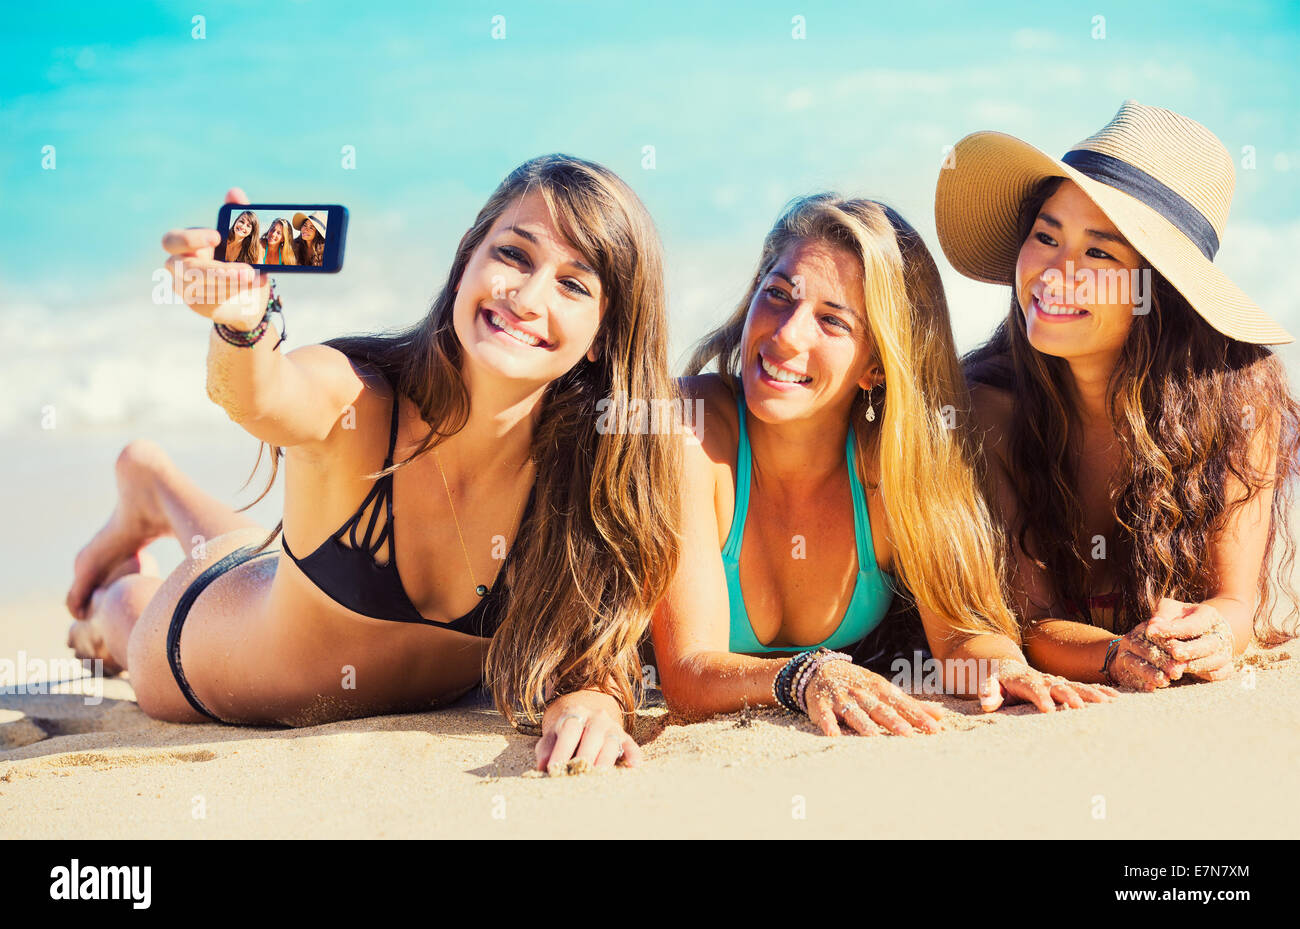 Girls having fun at the beach taking self portrait with smart phone. Summer Fun Lifestyle. - Stock Image